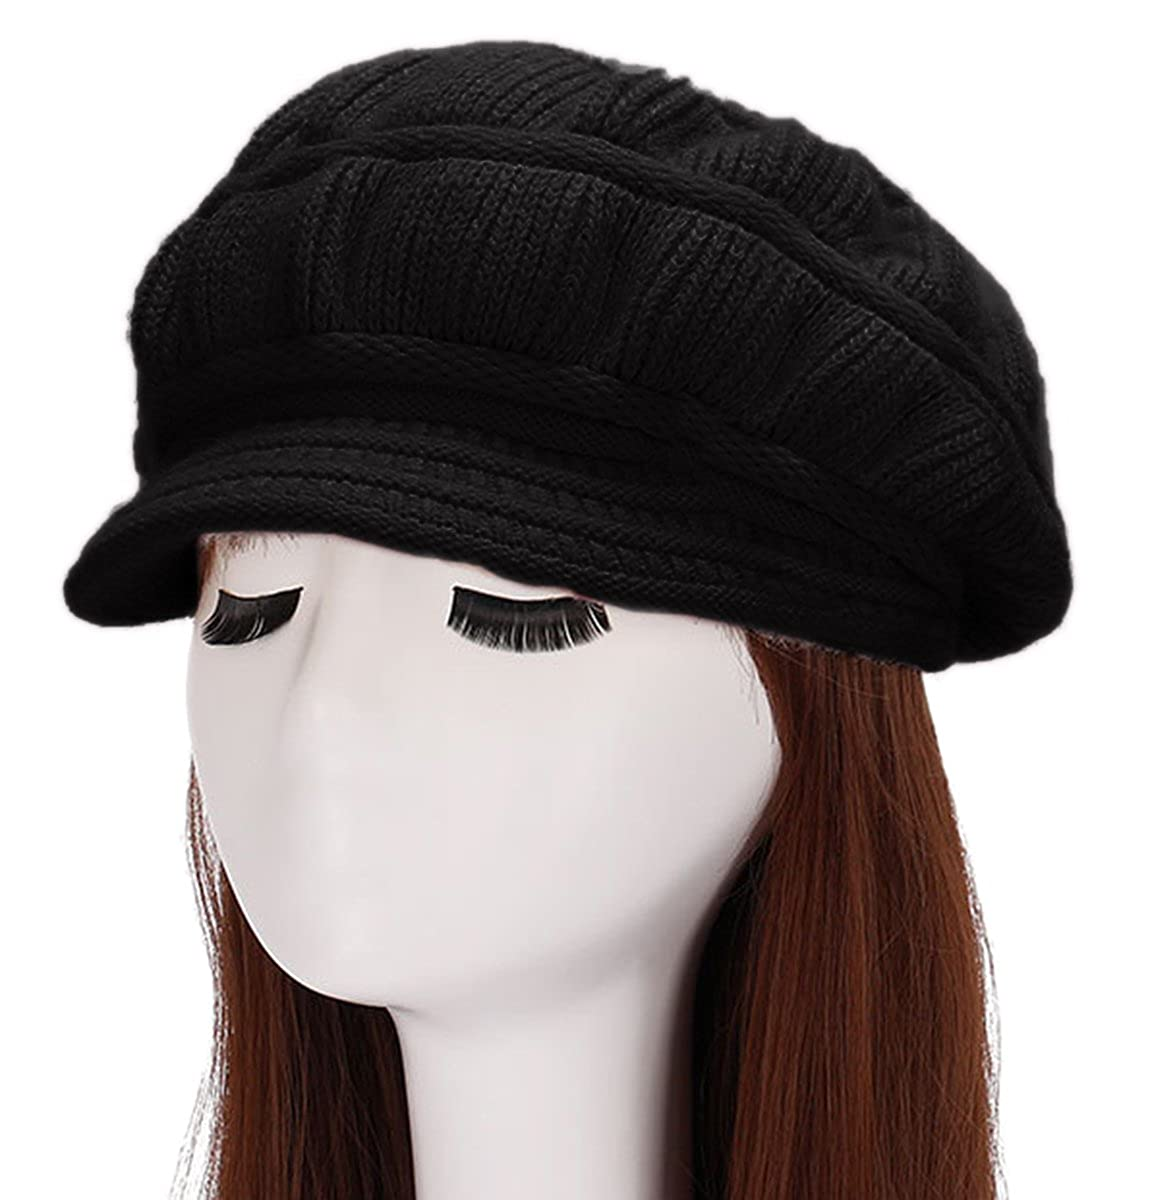 784c87b6ba8 CLASSICALLY GORGEOUS This soft hat makes a great gift this season